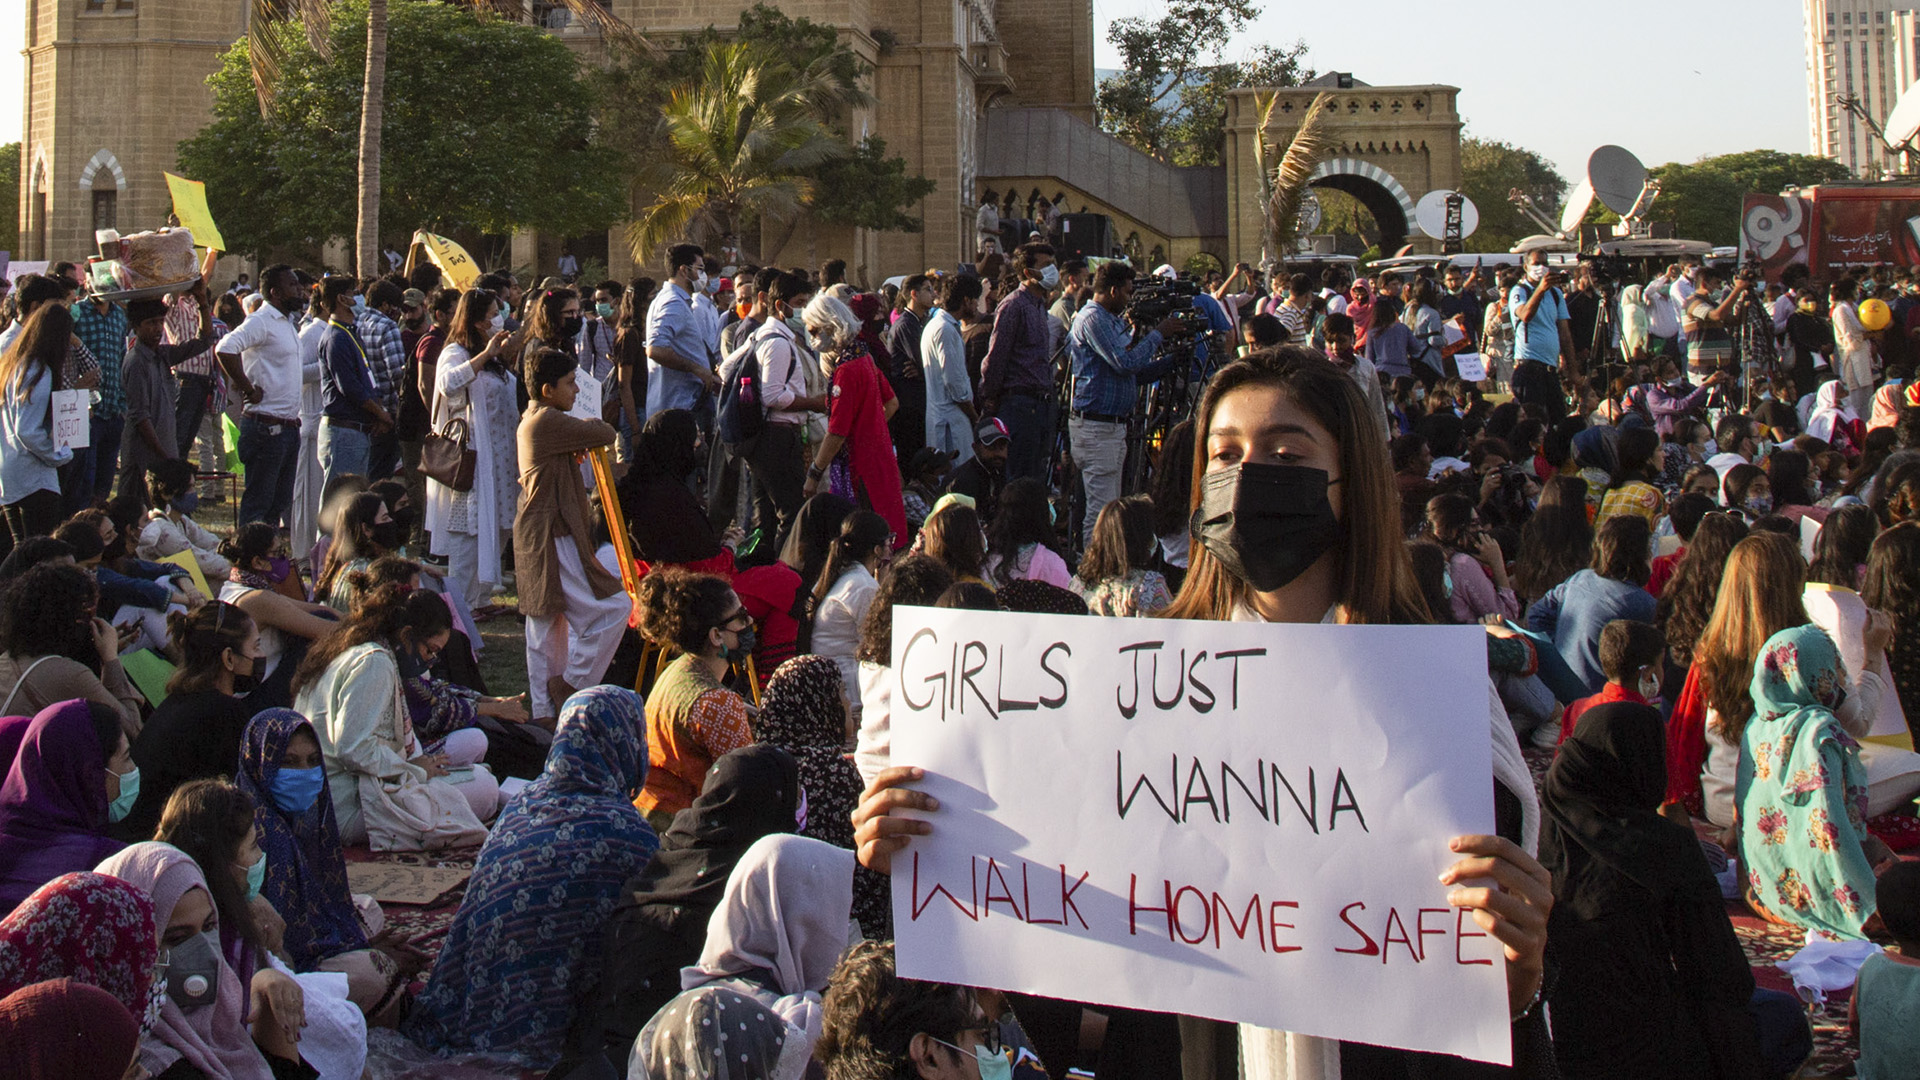 Human Rights Report Rings Alarm Over Plight Of Women In Pakistan